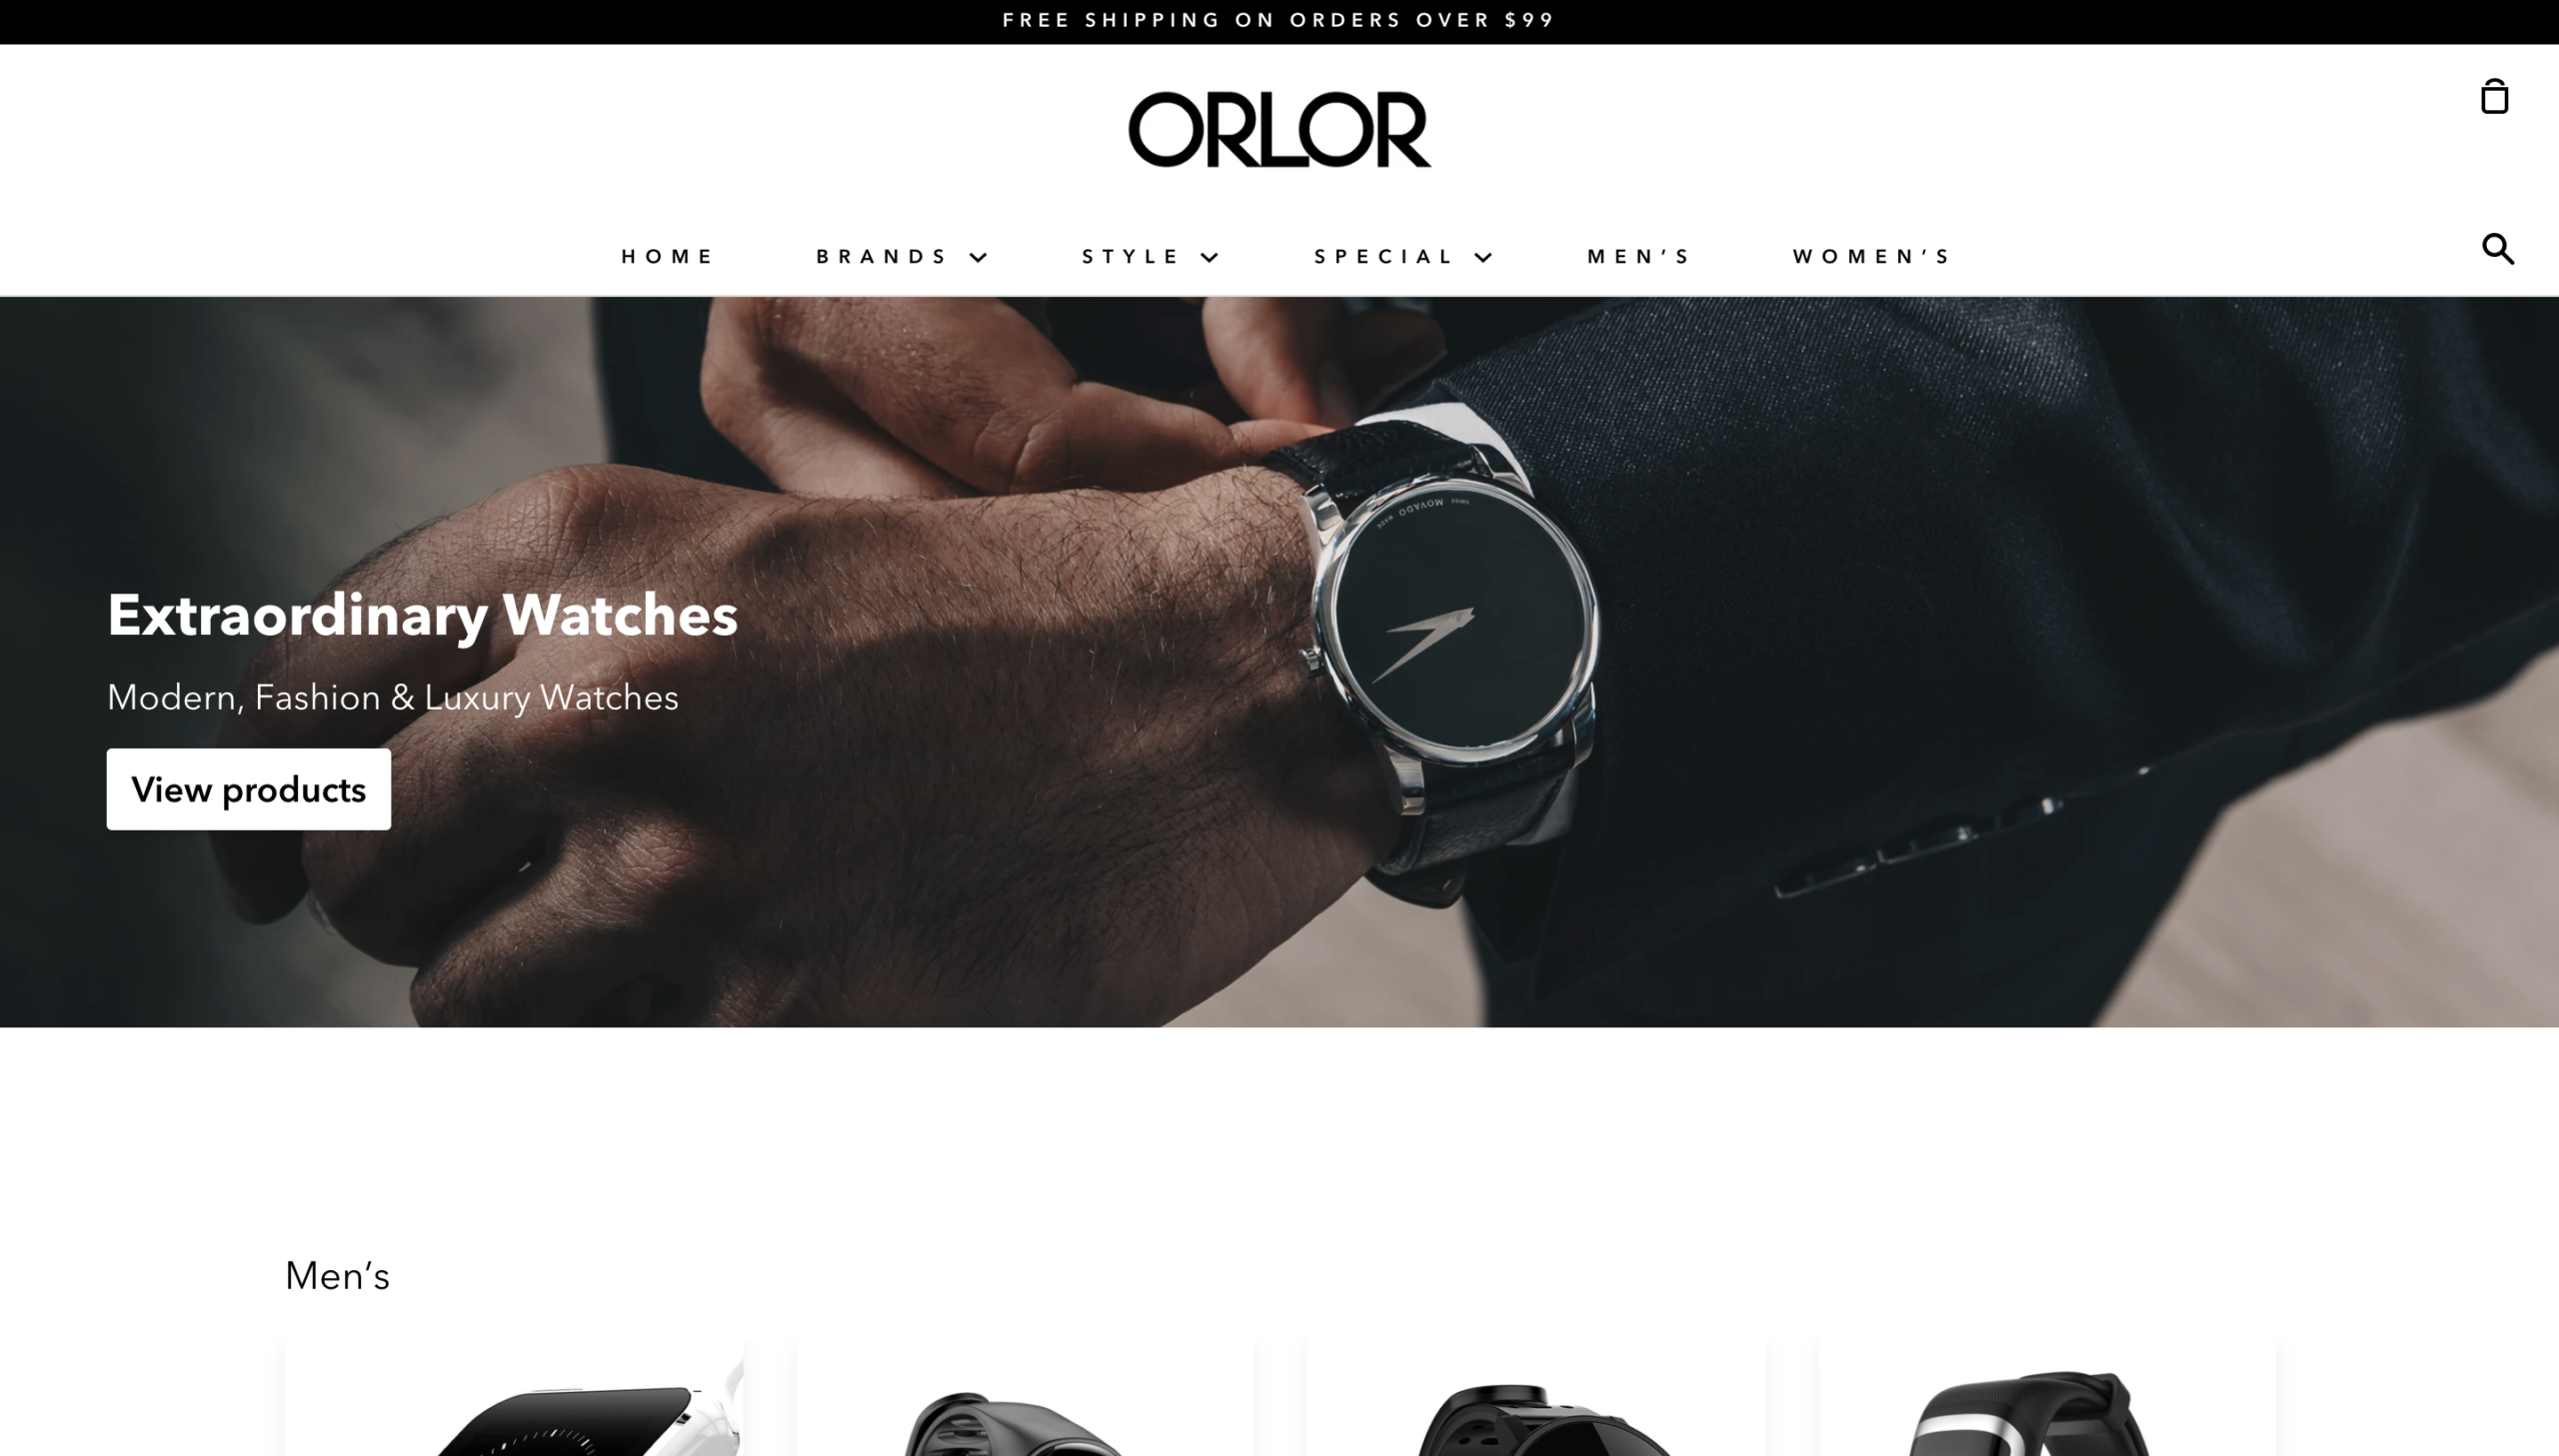 UlrichWeb-Reference-Orlor-Watches